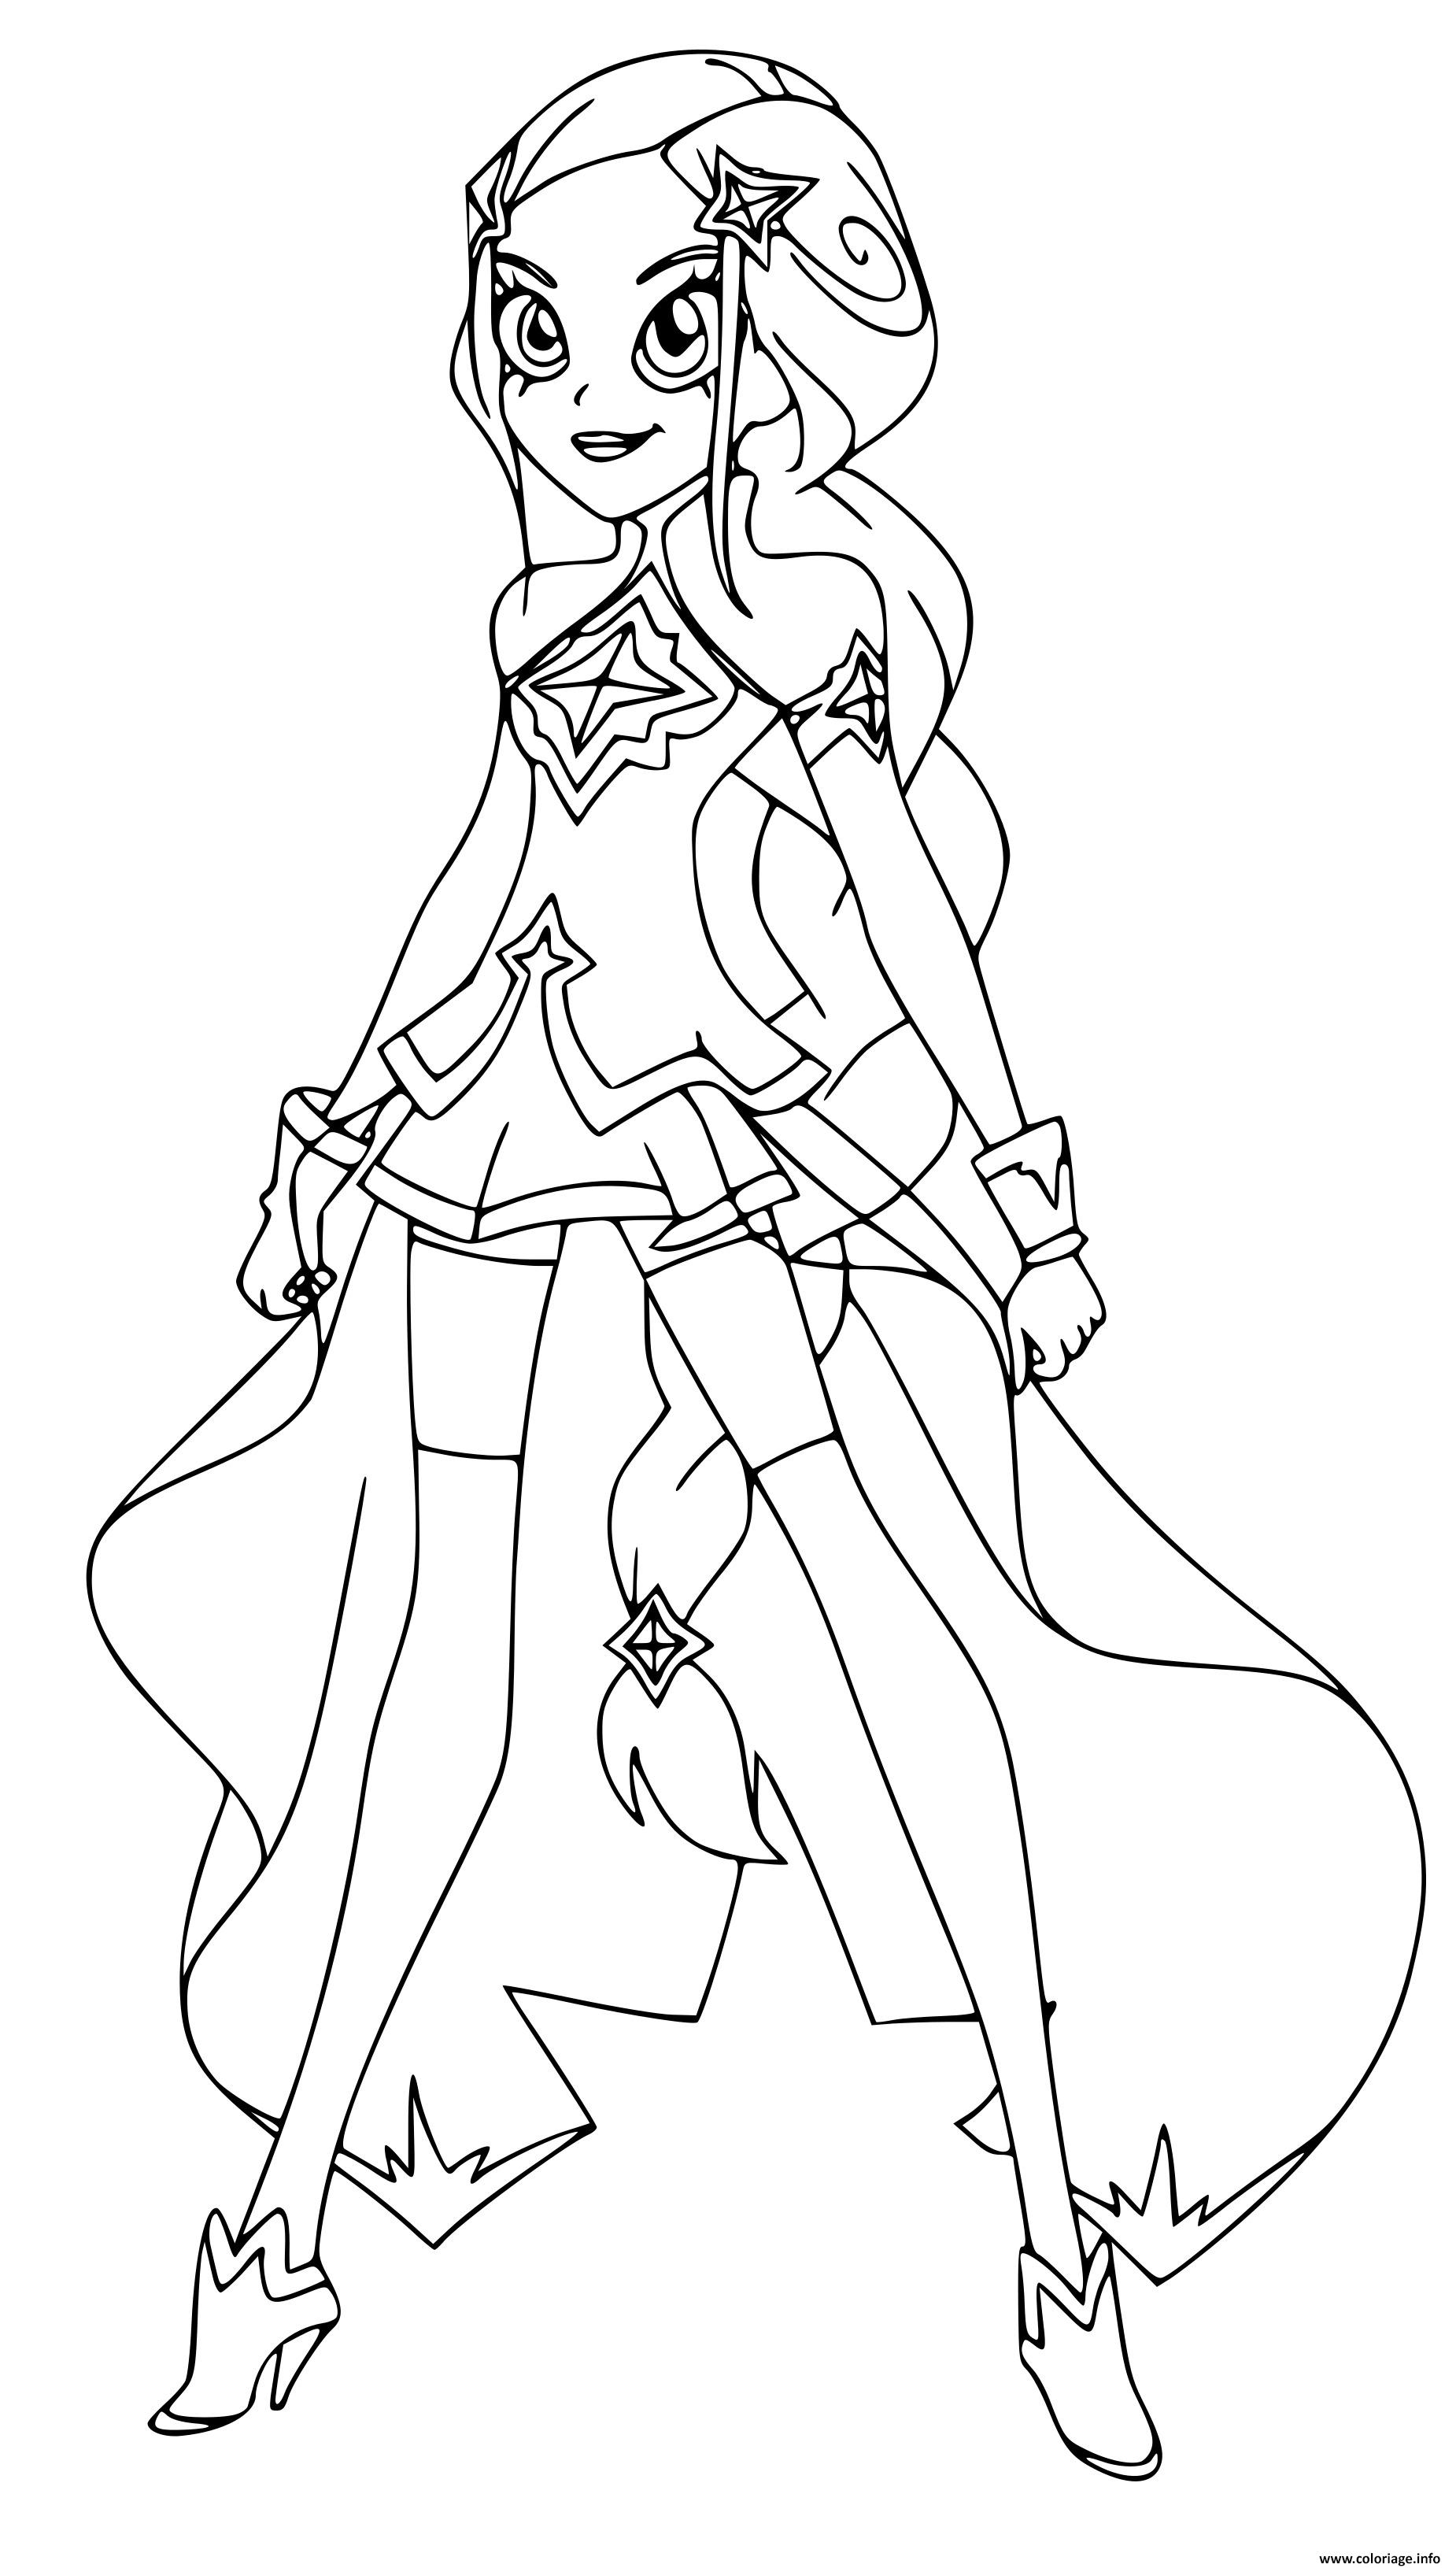 Lolirock Coloring / Play Lolirock Games For Free - Get inspired by